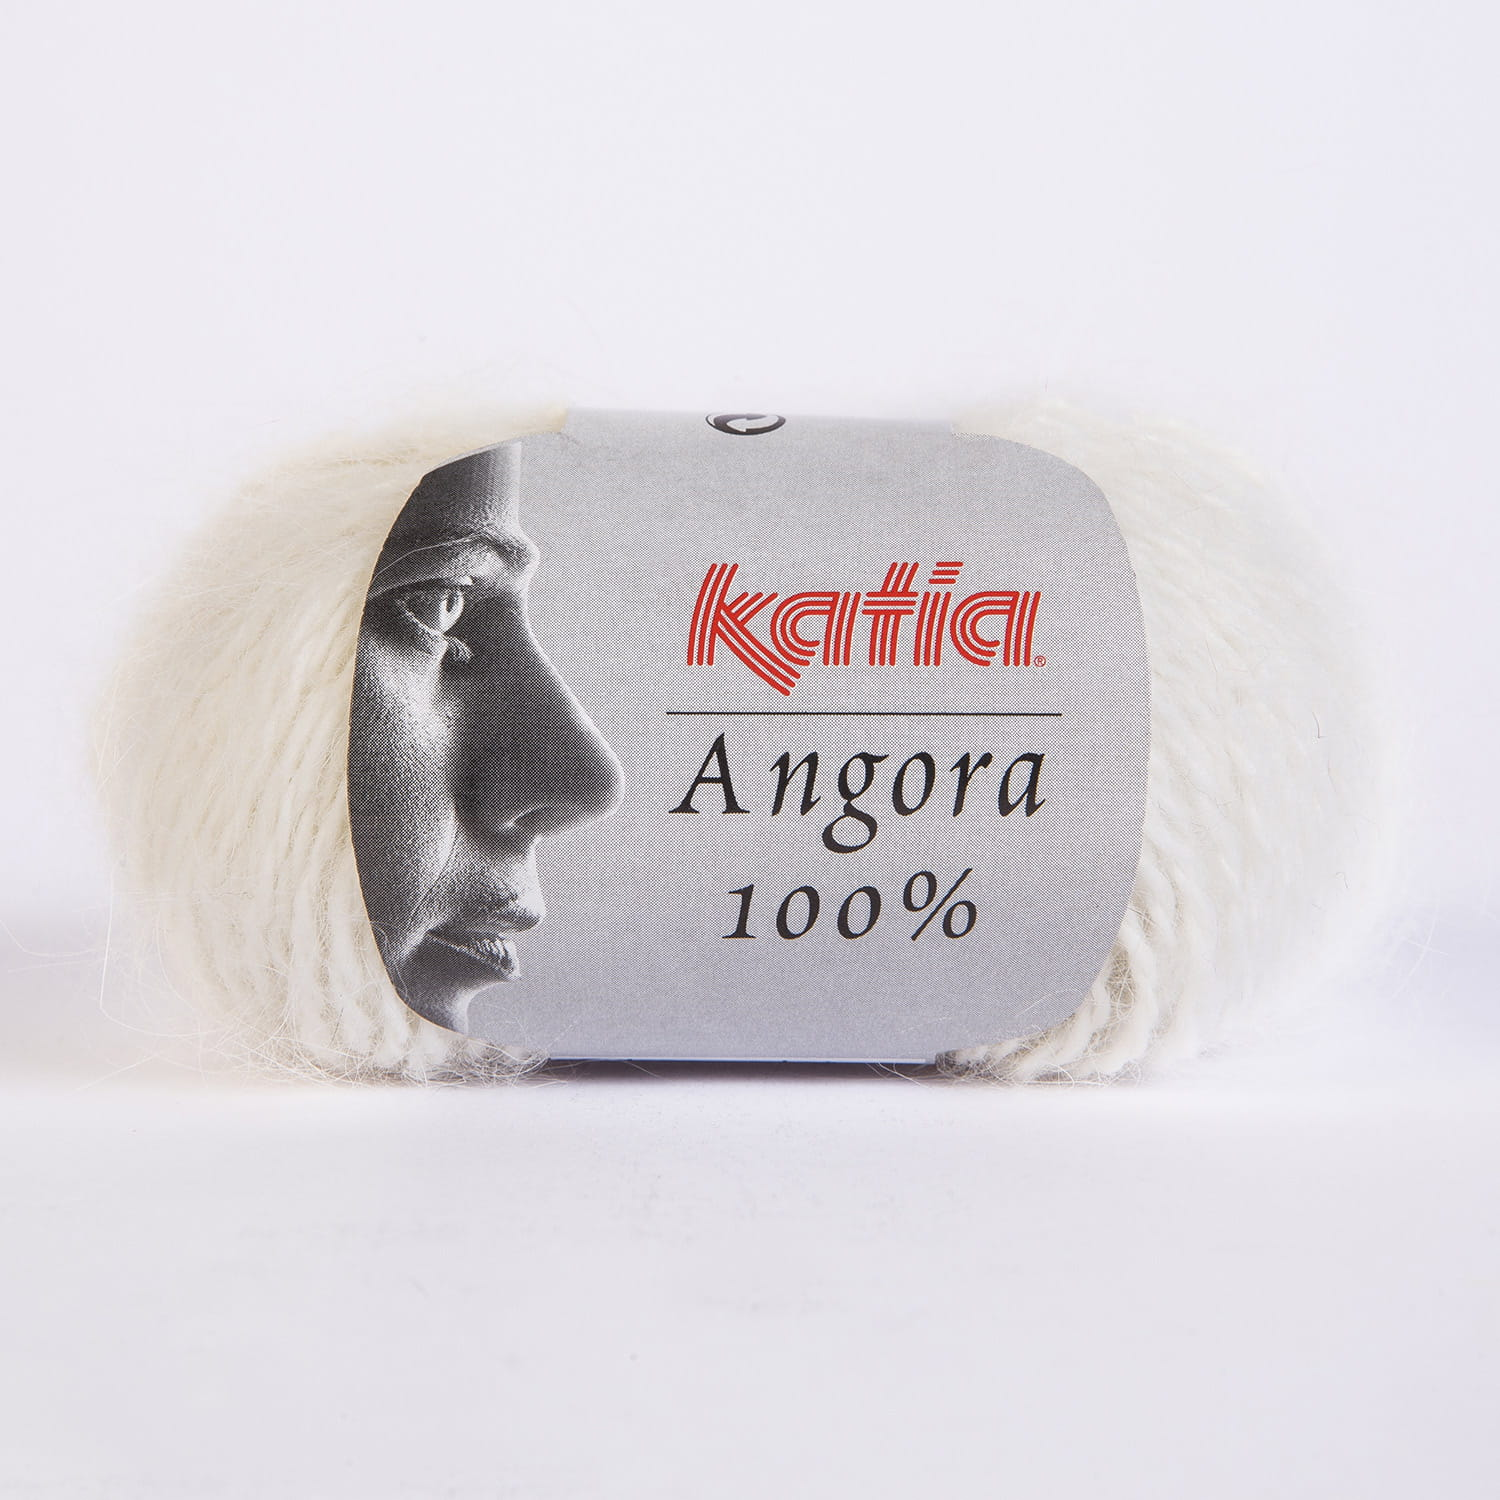 yarn-wool-angora100-knit-angora-ivory-autumn-winter-katia-3-g.jpg